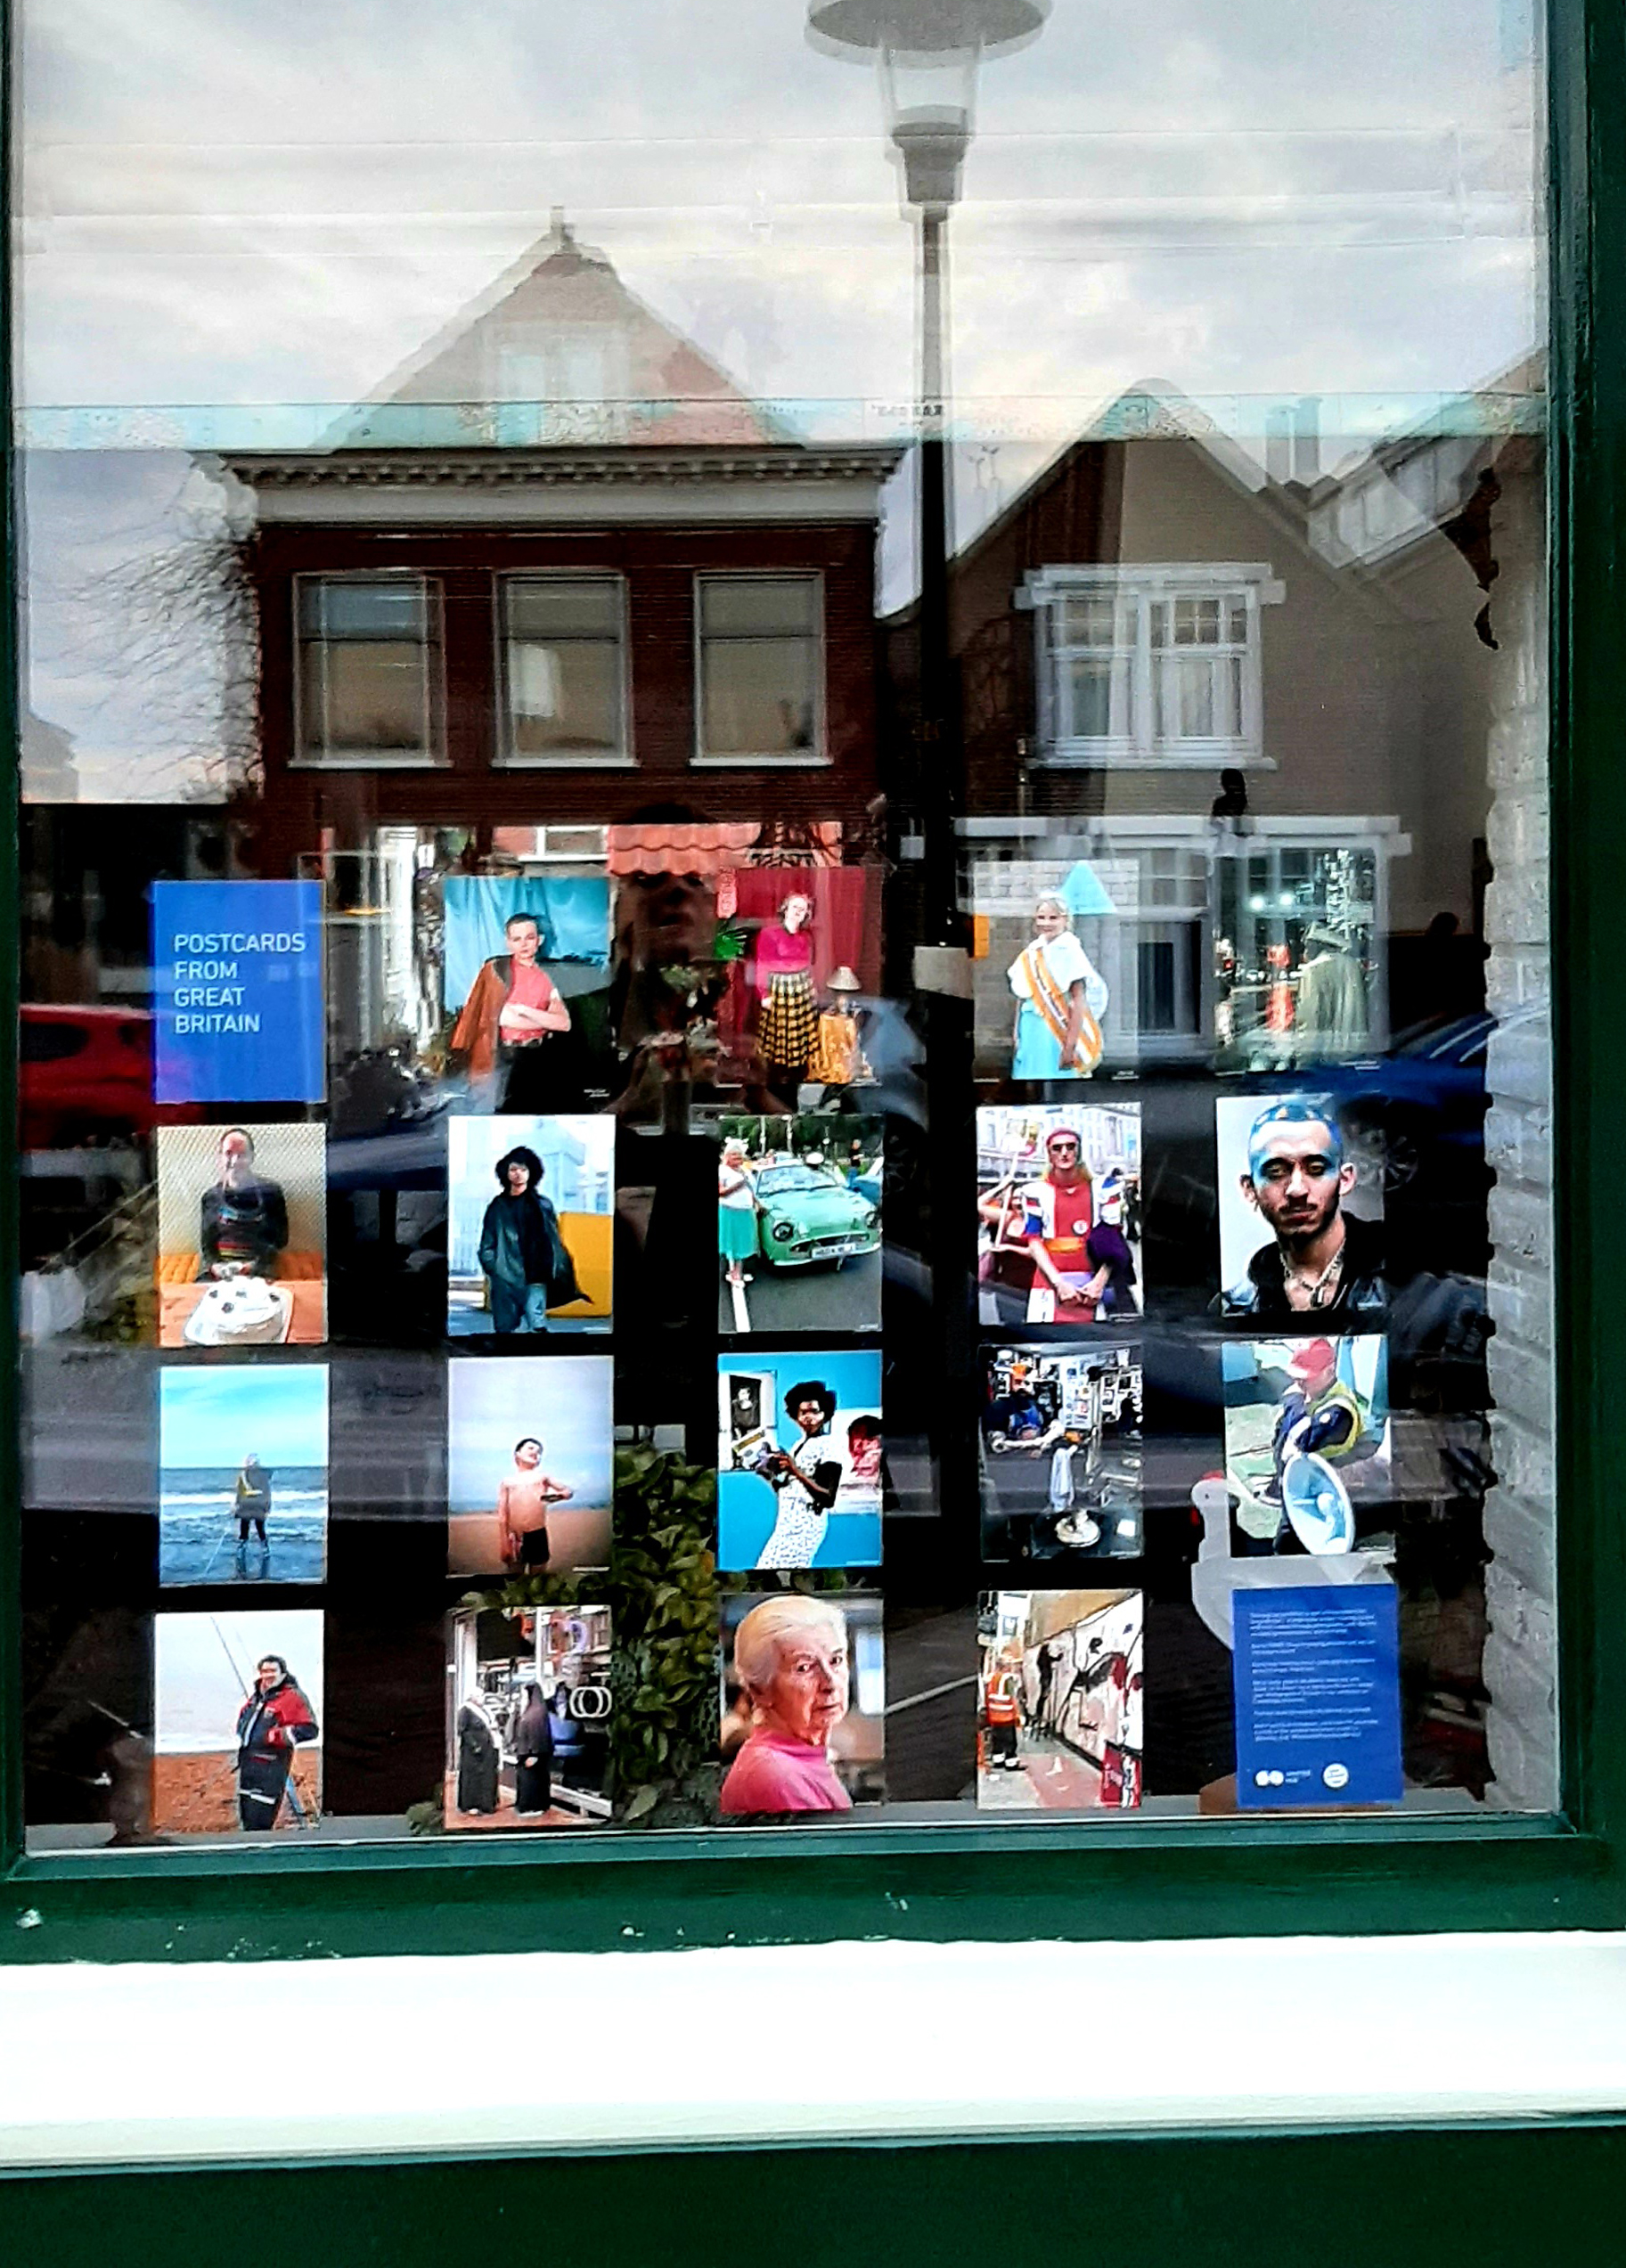 Photograph of a window displaying postcard-sized photographs, with buildings reflected in the top of the window.